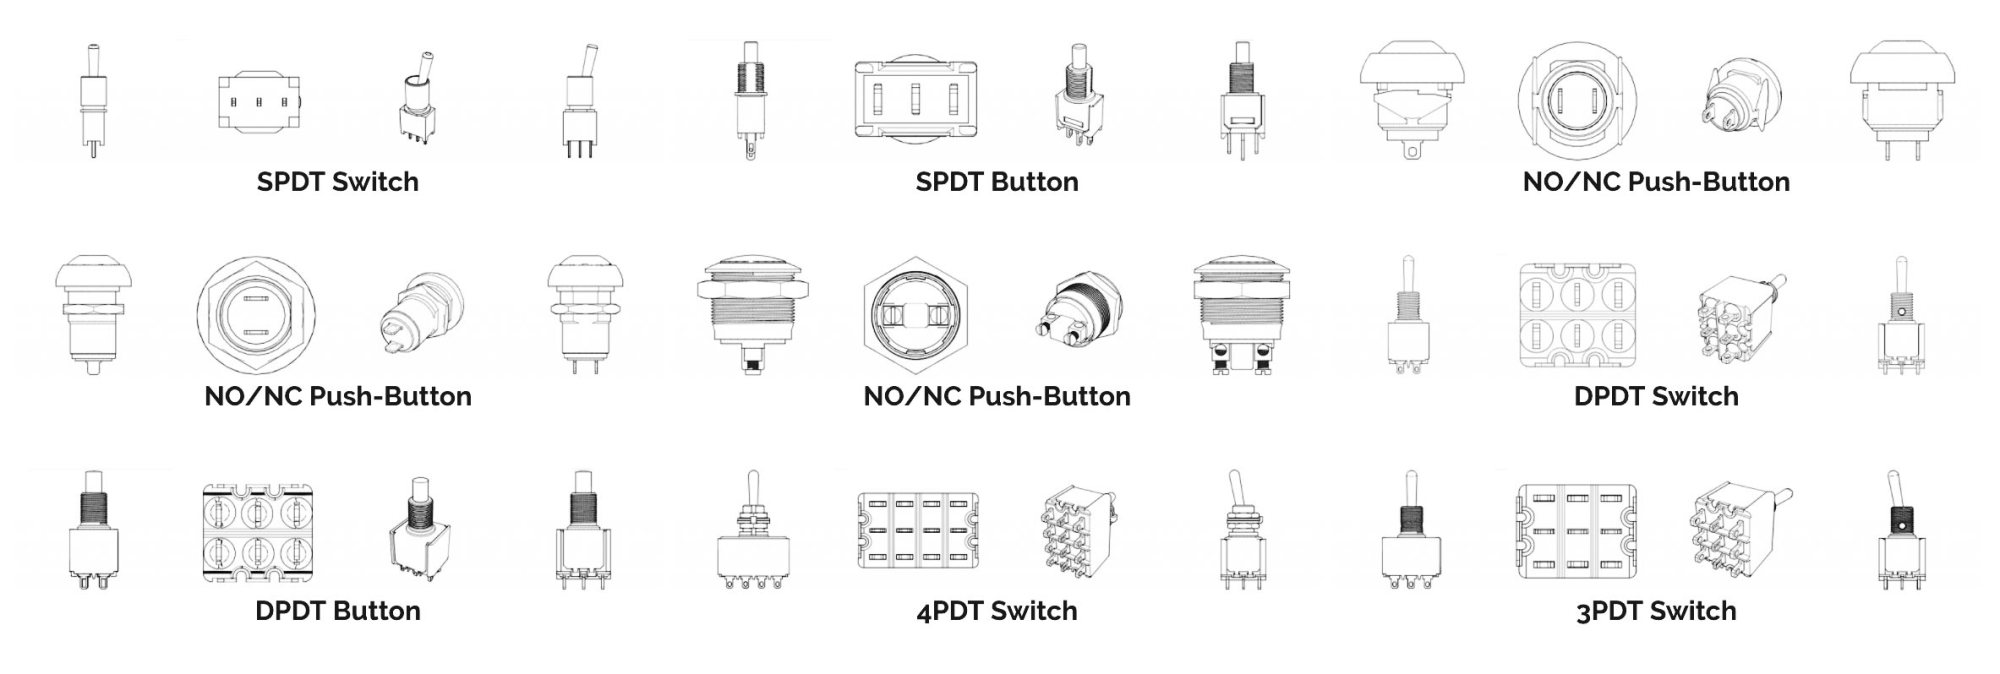 hight resolution of some examples of the various buttons and switches you may encounter and wish to use for your killswitch